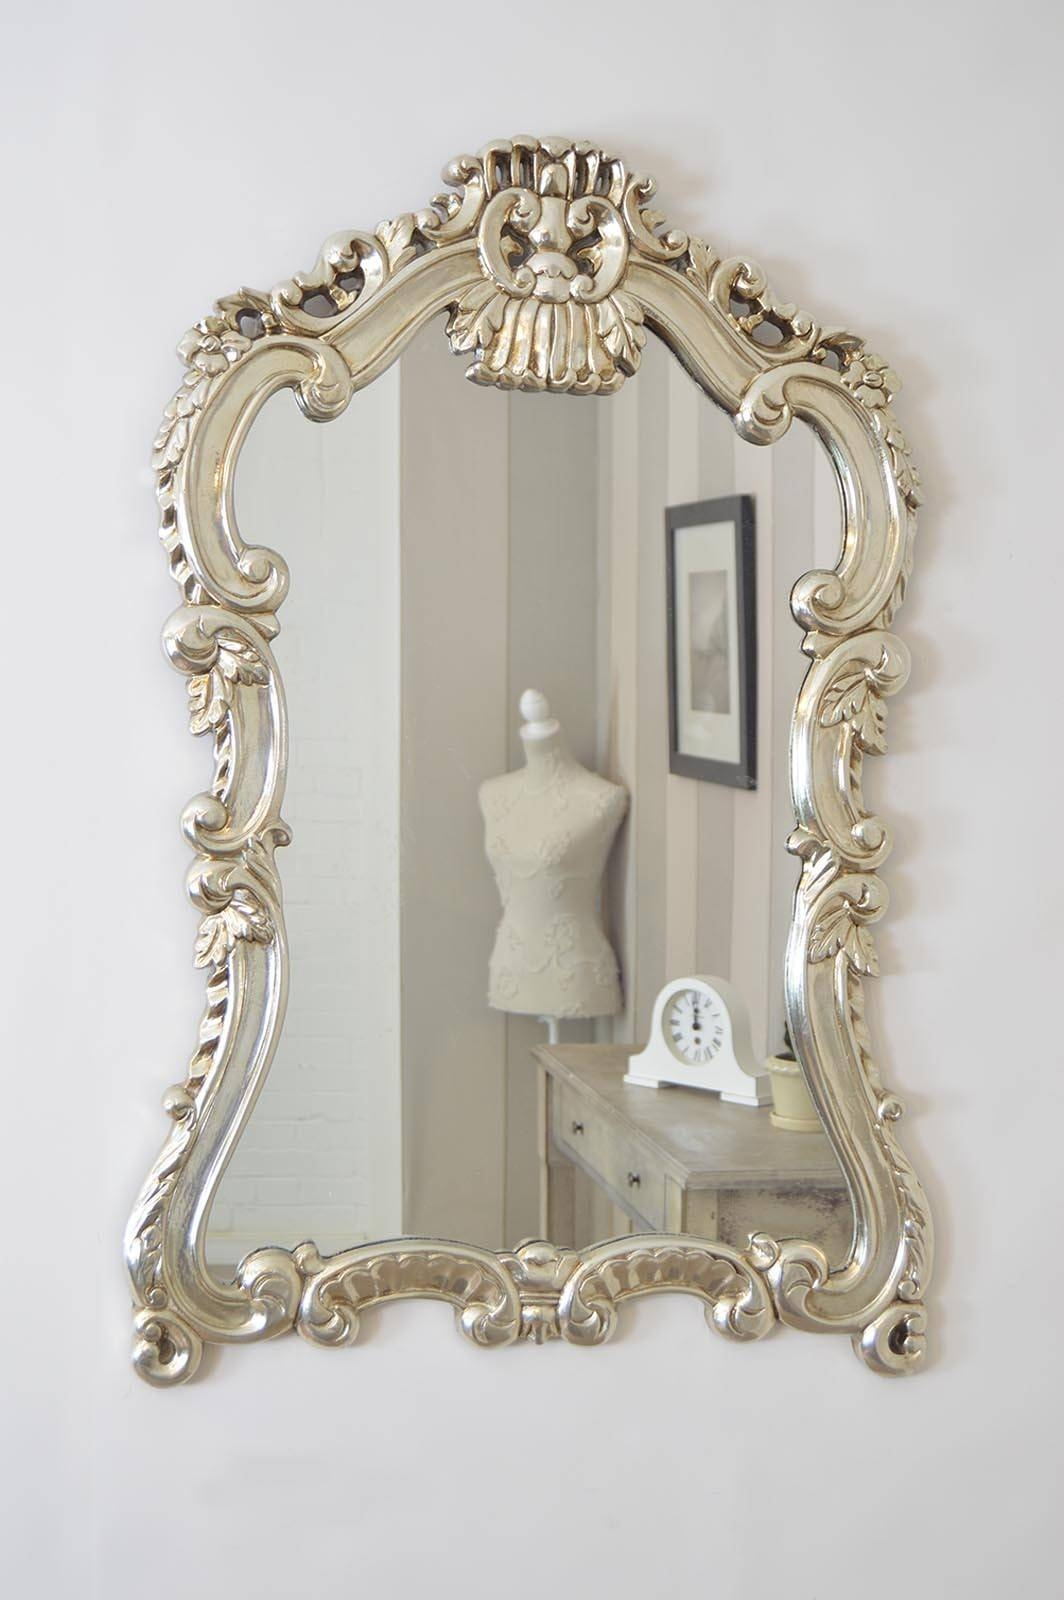 Baroque Wall Mirror - Wall Art Design pertaining to Baroque Wall Mirrors (Image 4 of 15)